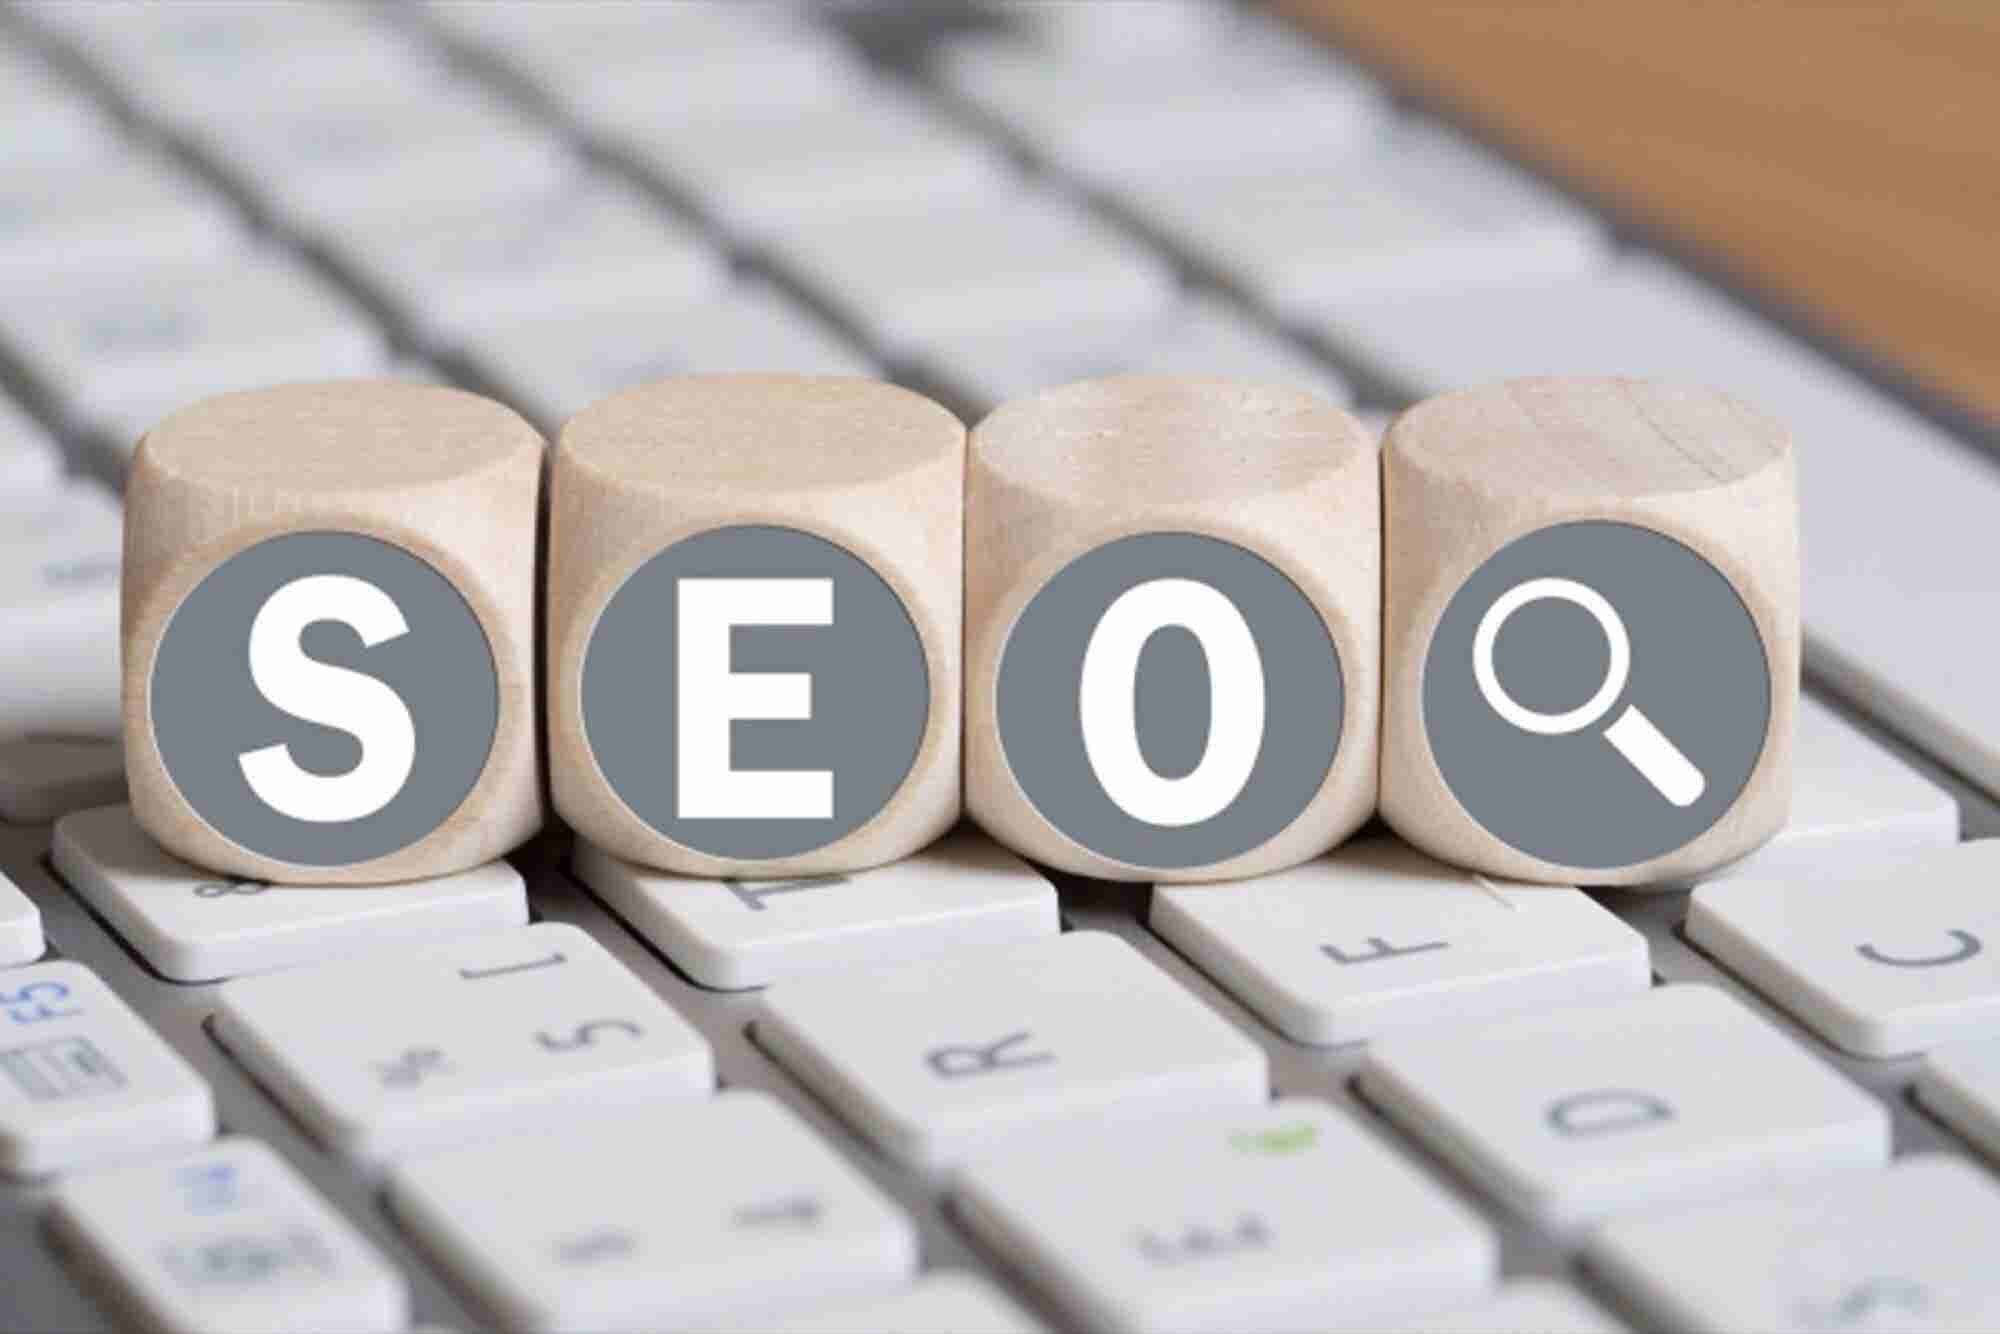 5 SEO Concepts Entrepreneurs Should Implement in 2018-2019 to Boost Google Ranking